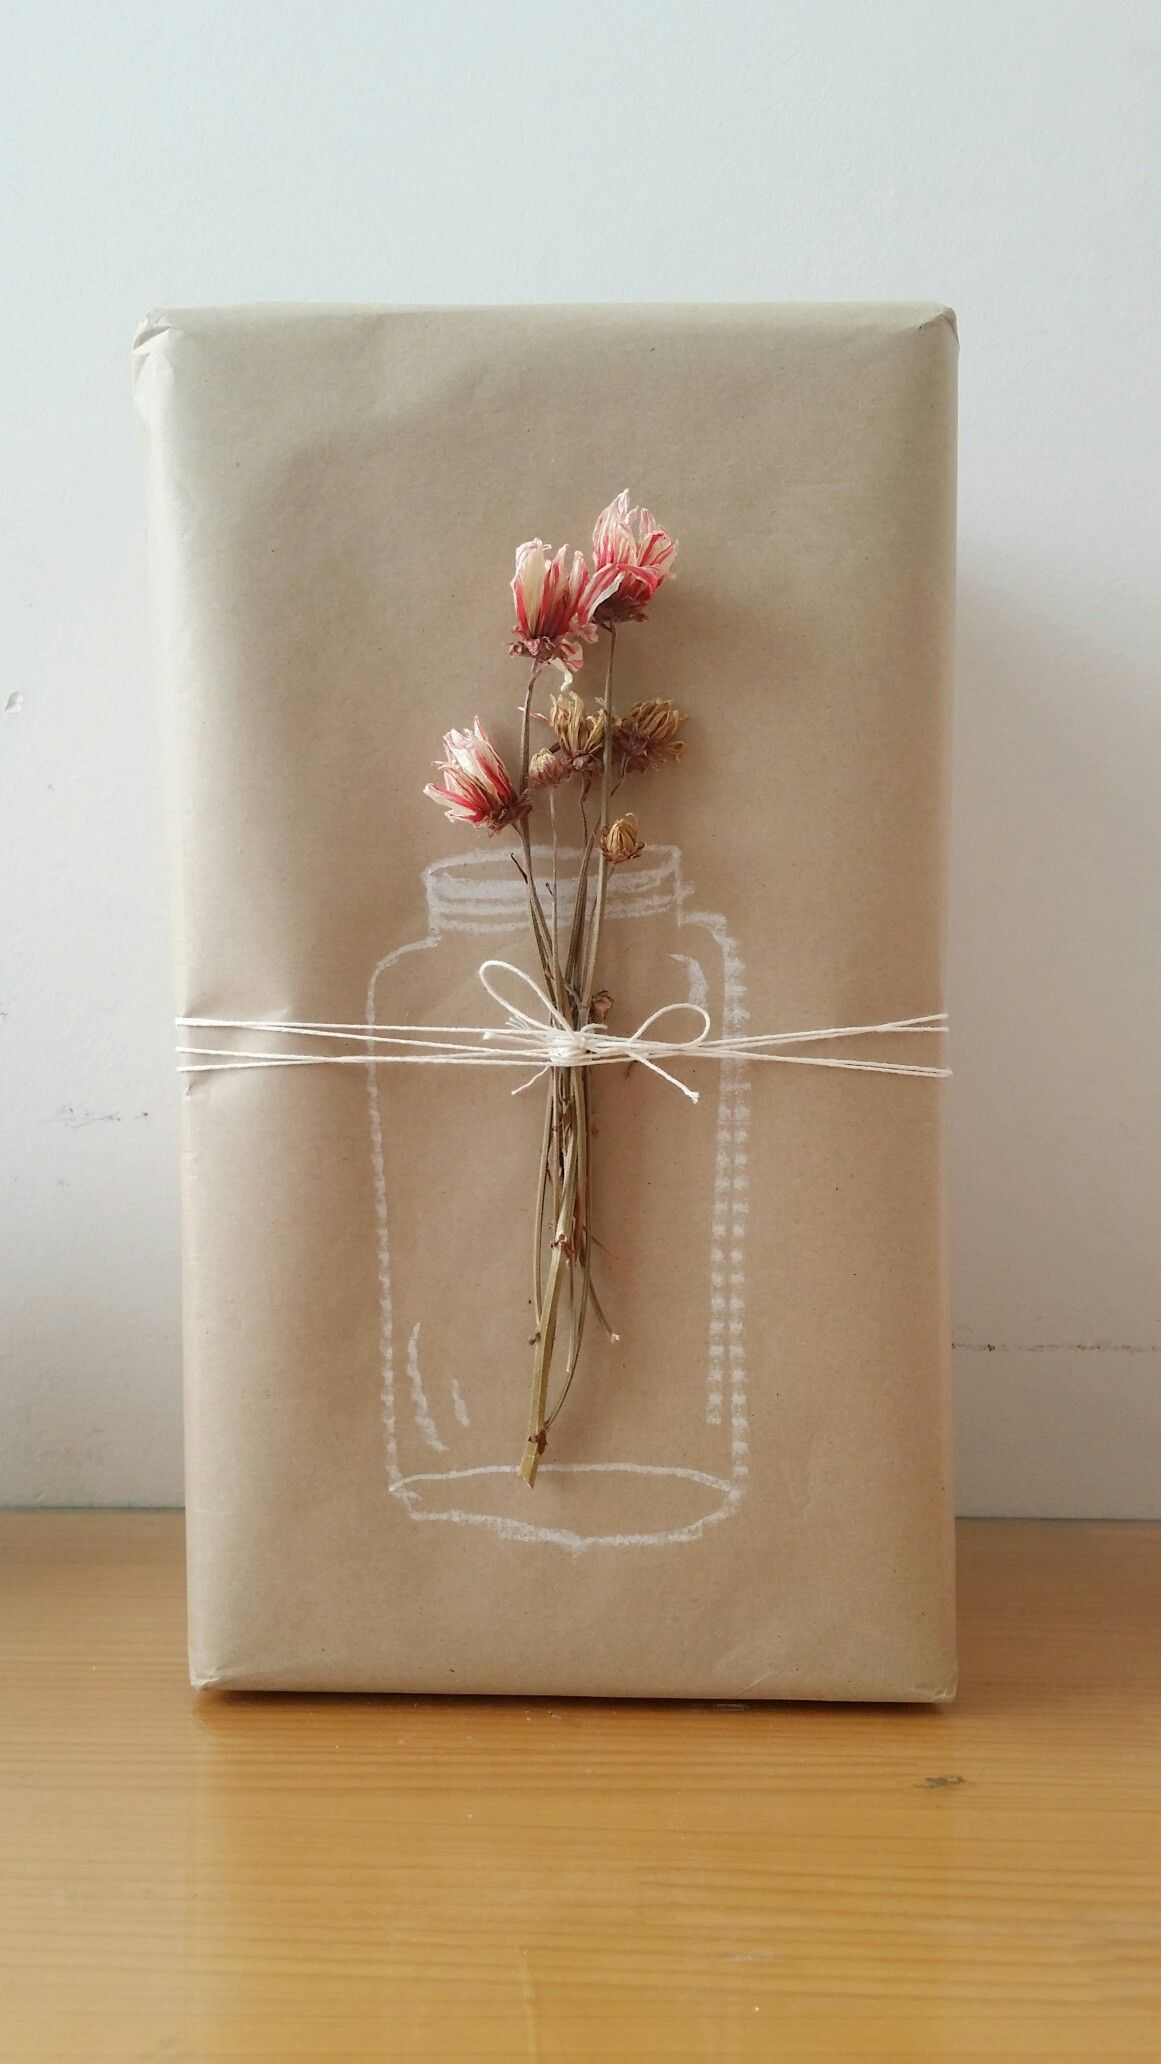 900+ Brown Paper ideas in 2021 | gift wrapping, creative gift wrapping, gifts